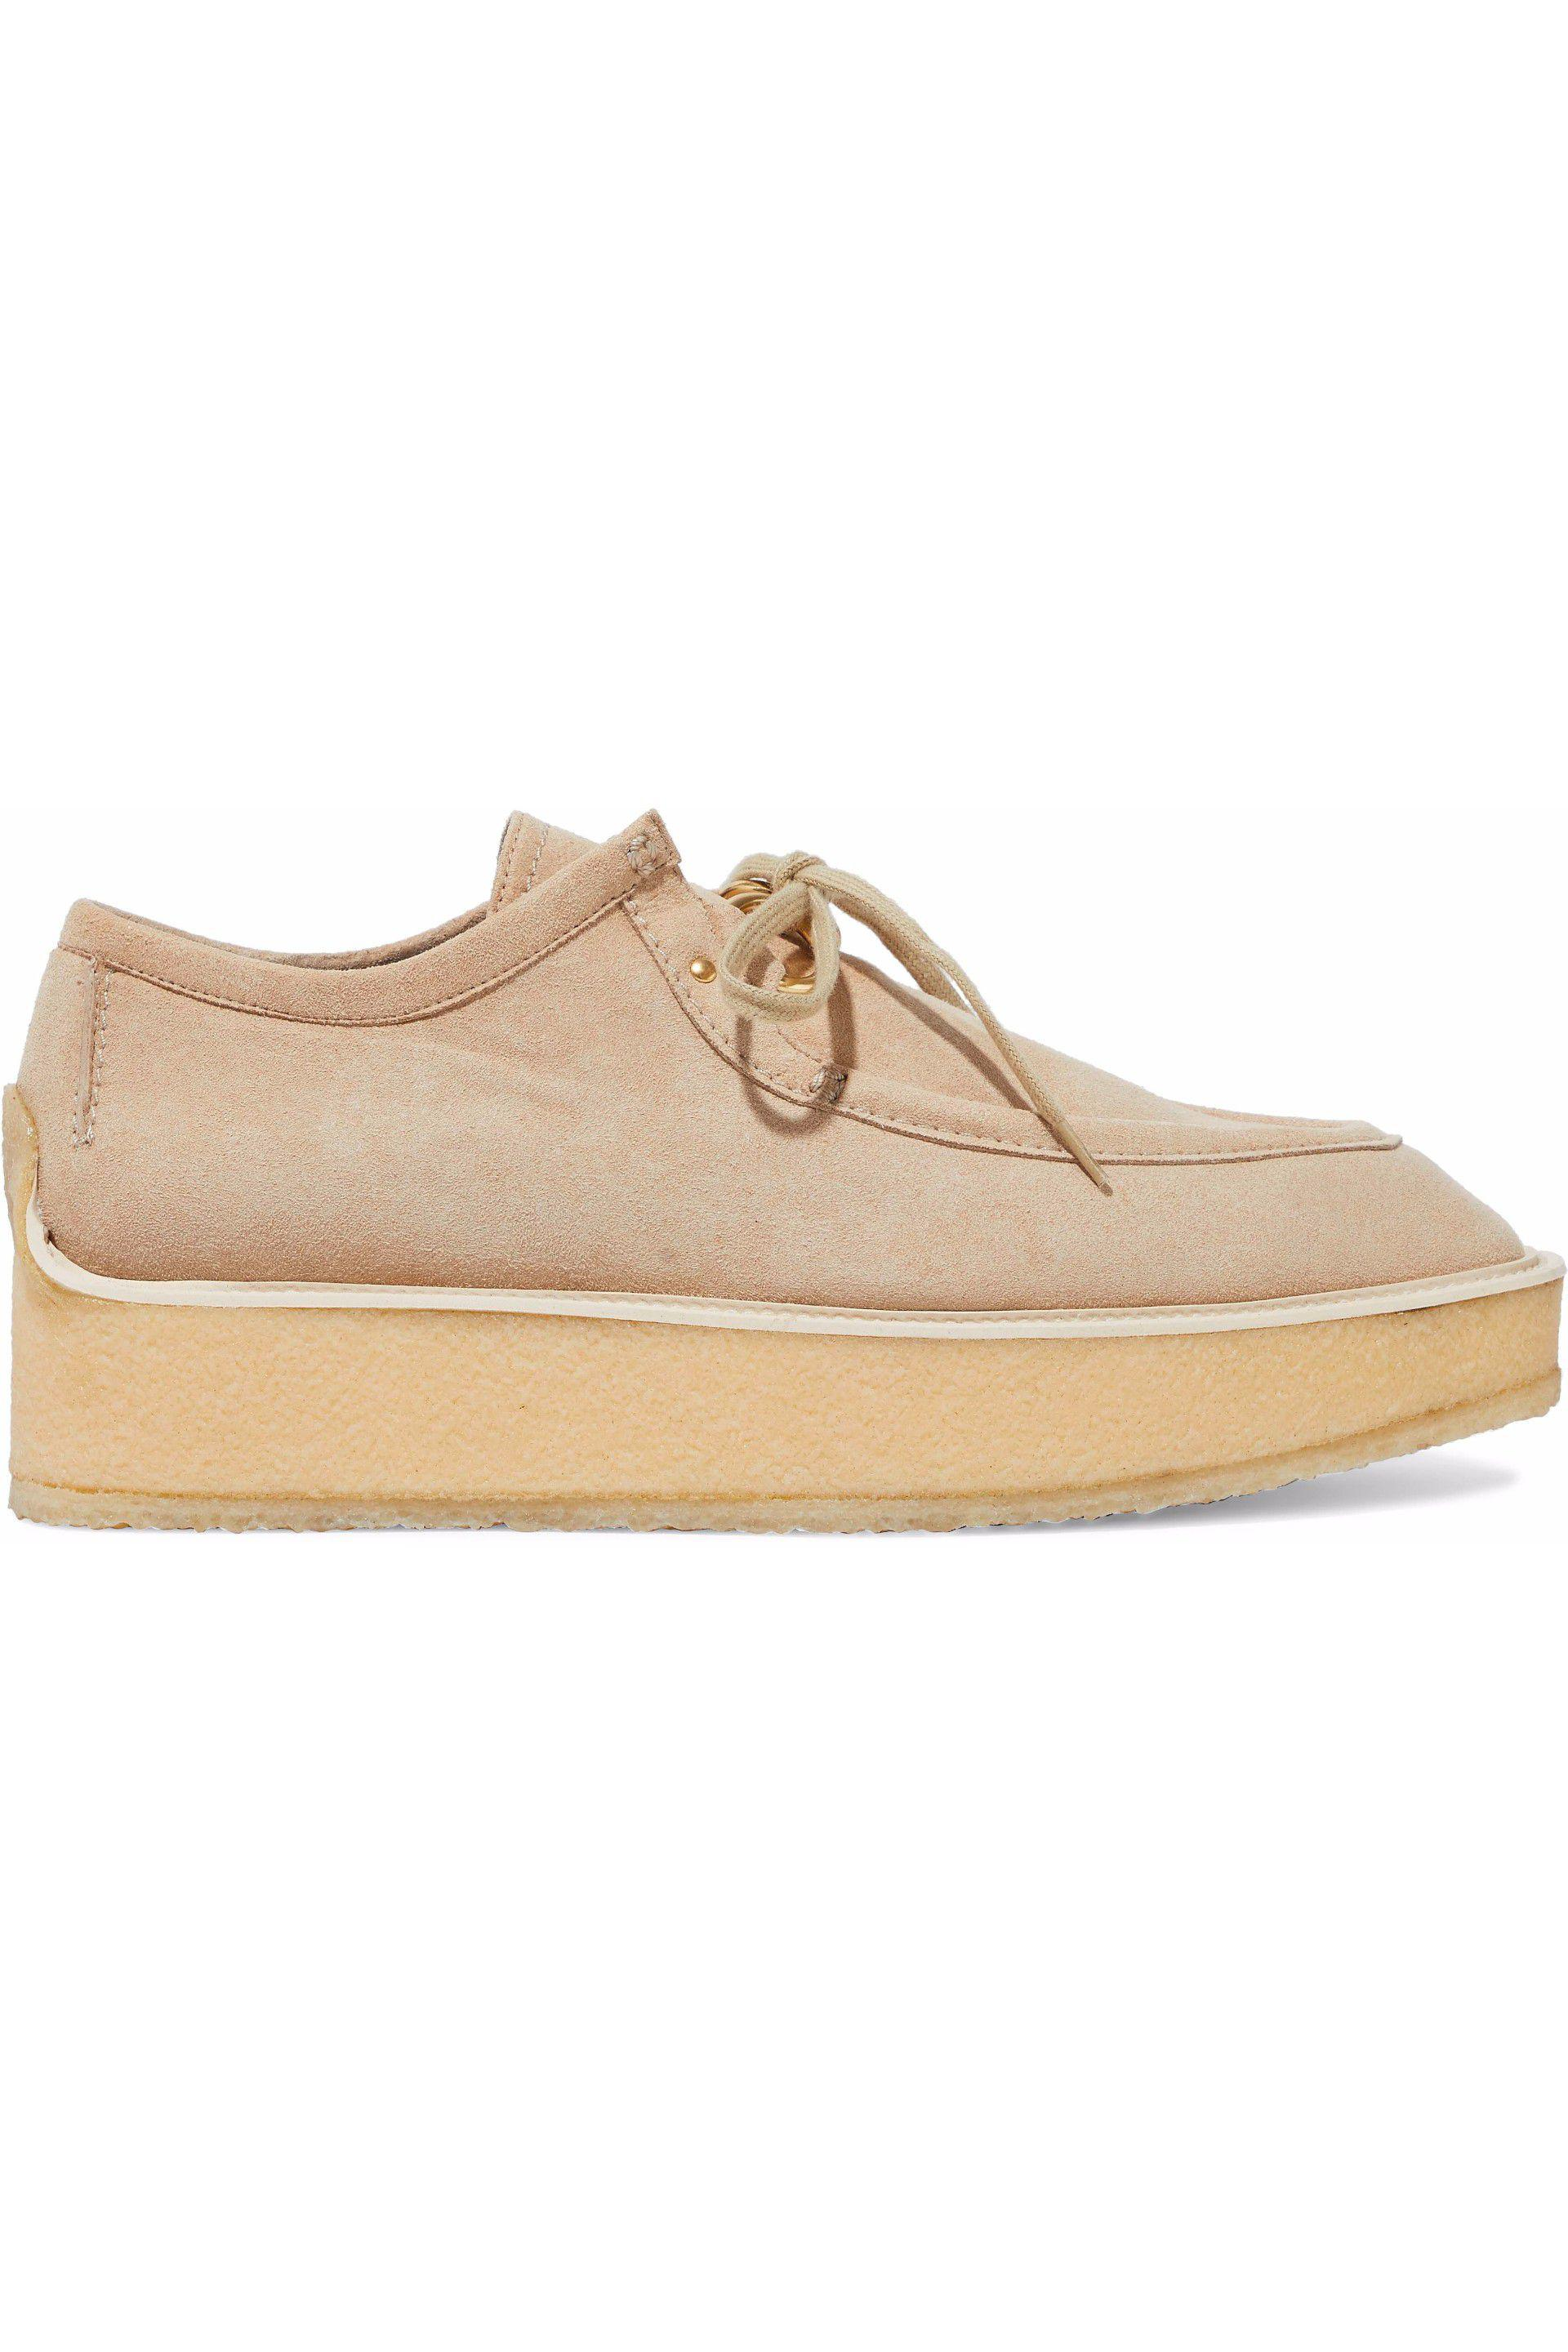 68c32410dcae Lyst - Stella McCartney Faux Suede Platform Loafers in Natural